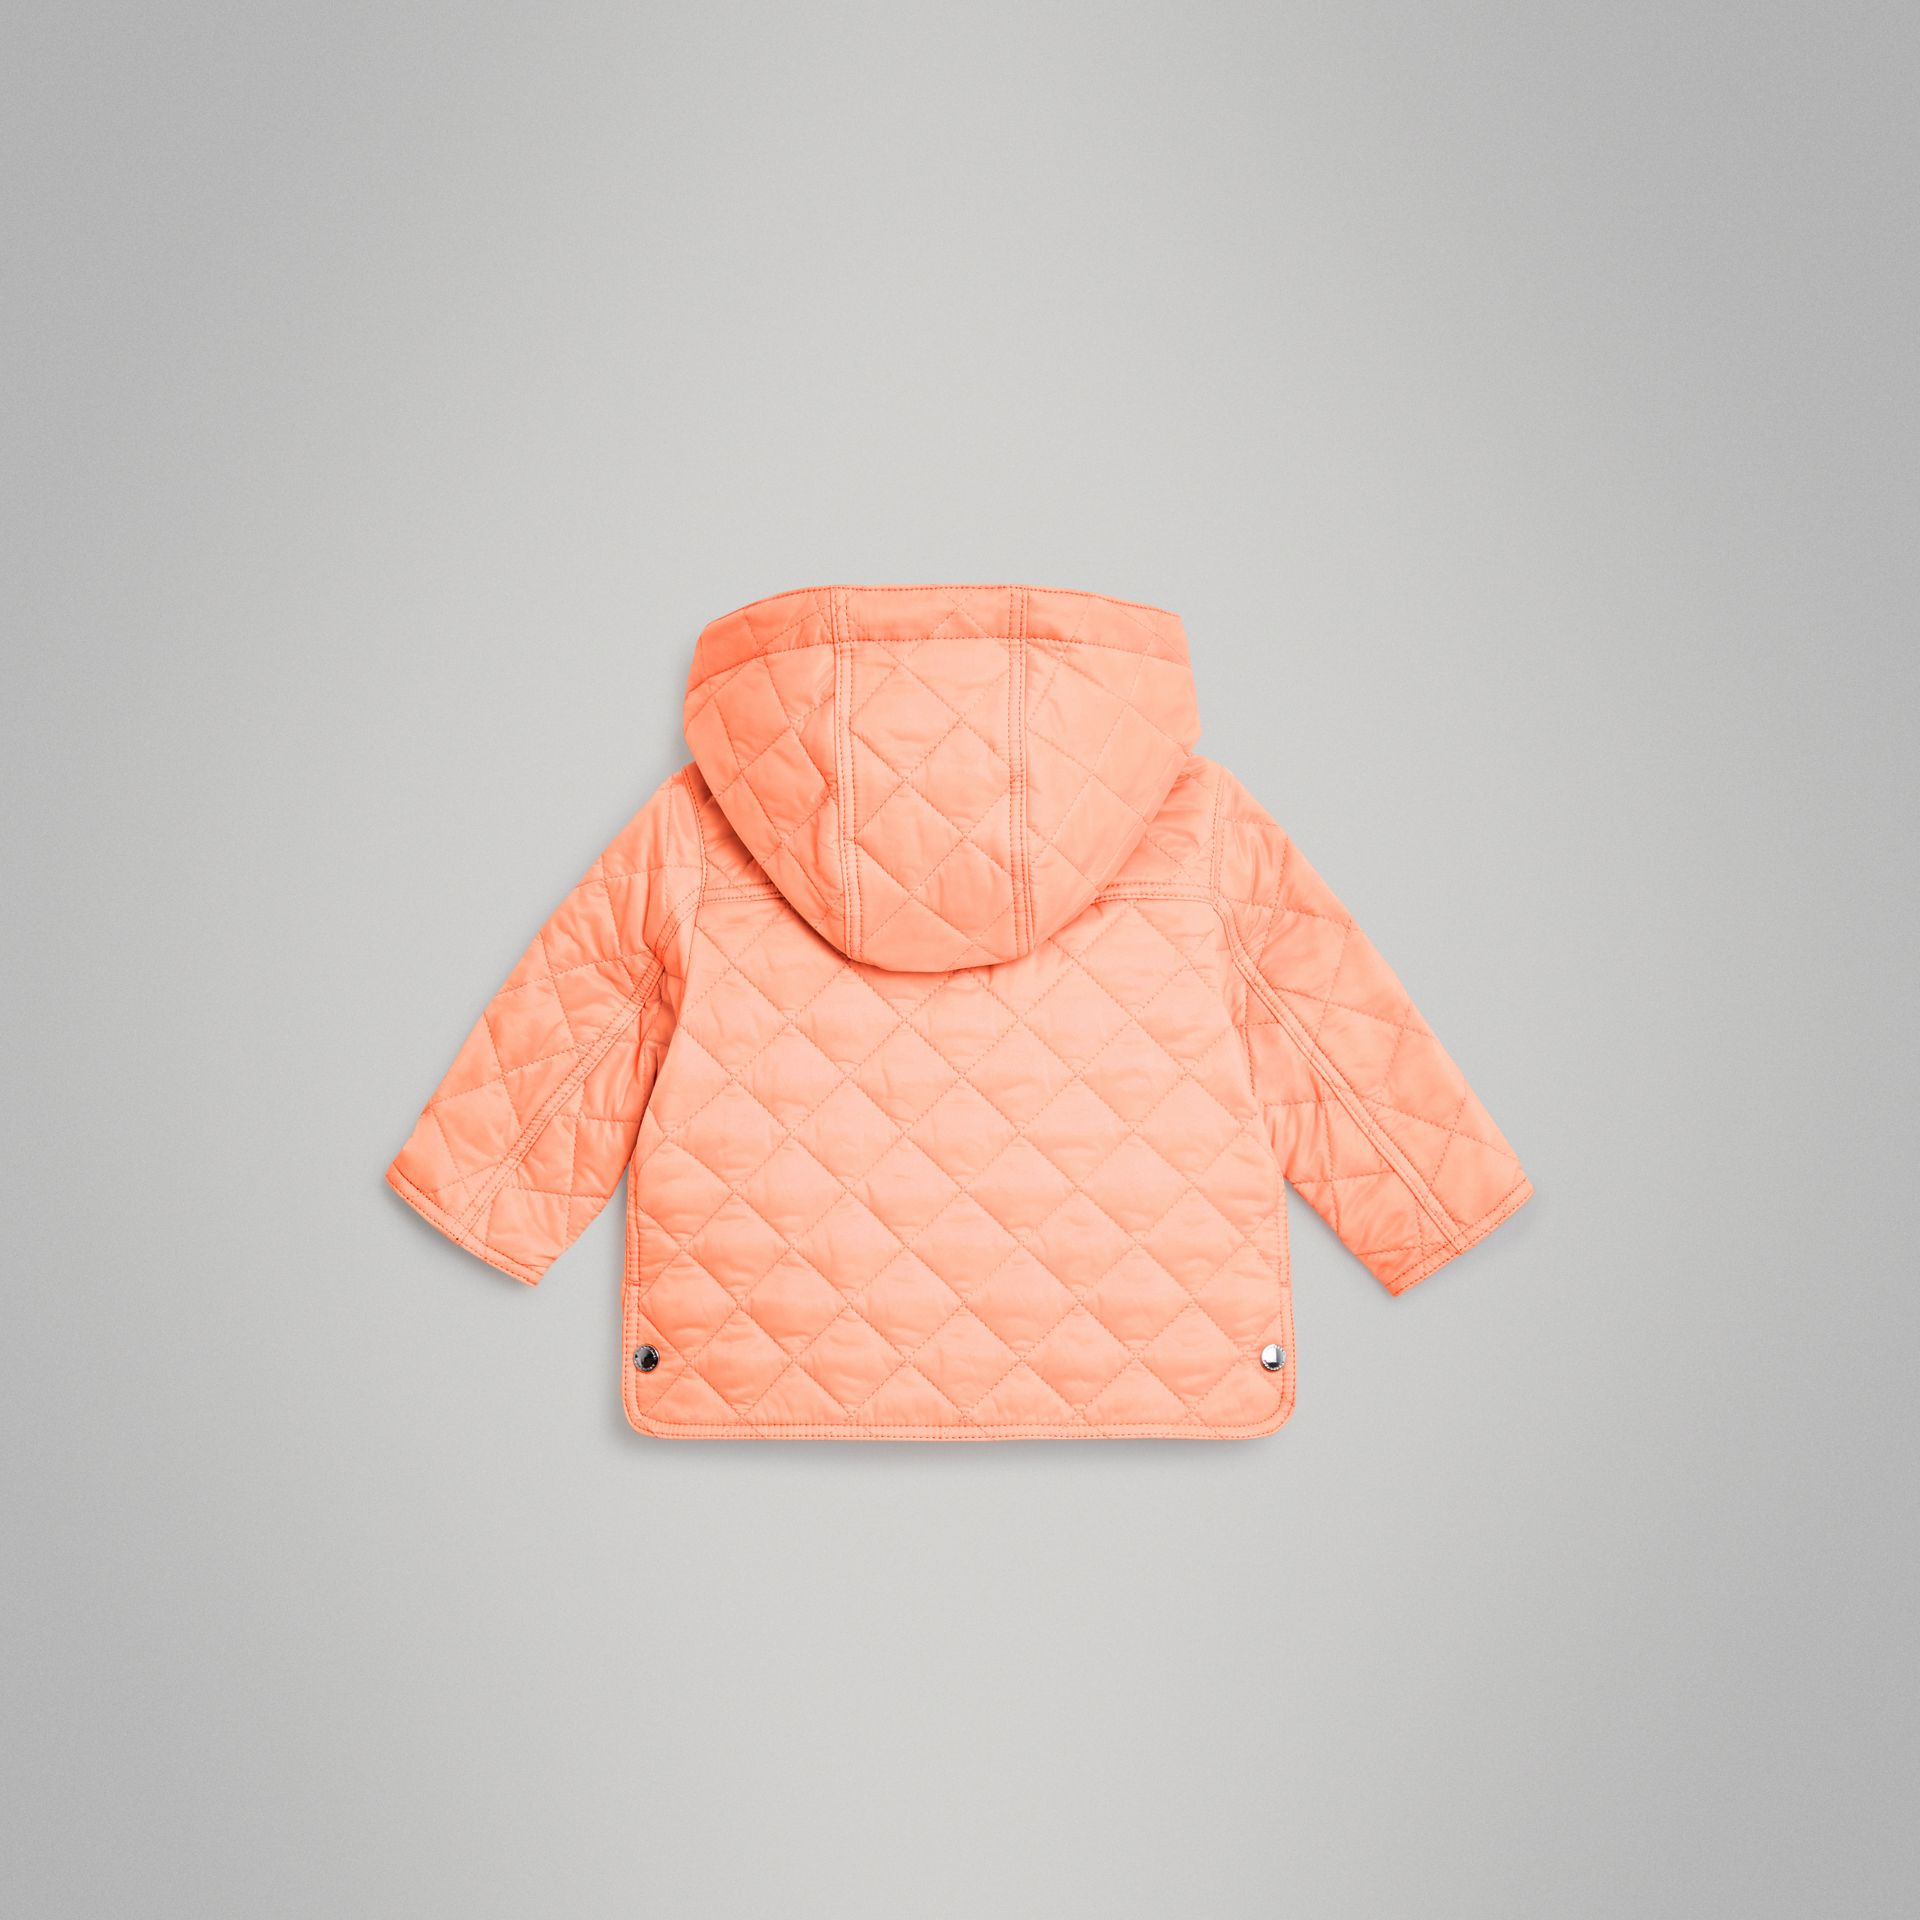 Diamond Quilted Hooded Jacket in Apricot Pink - Children | Burberry Canada - gallery image 3